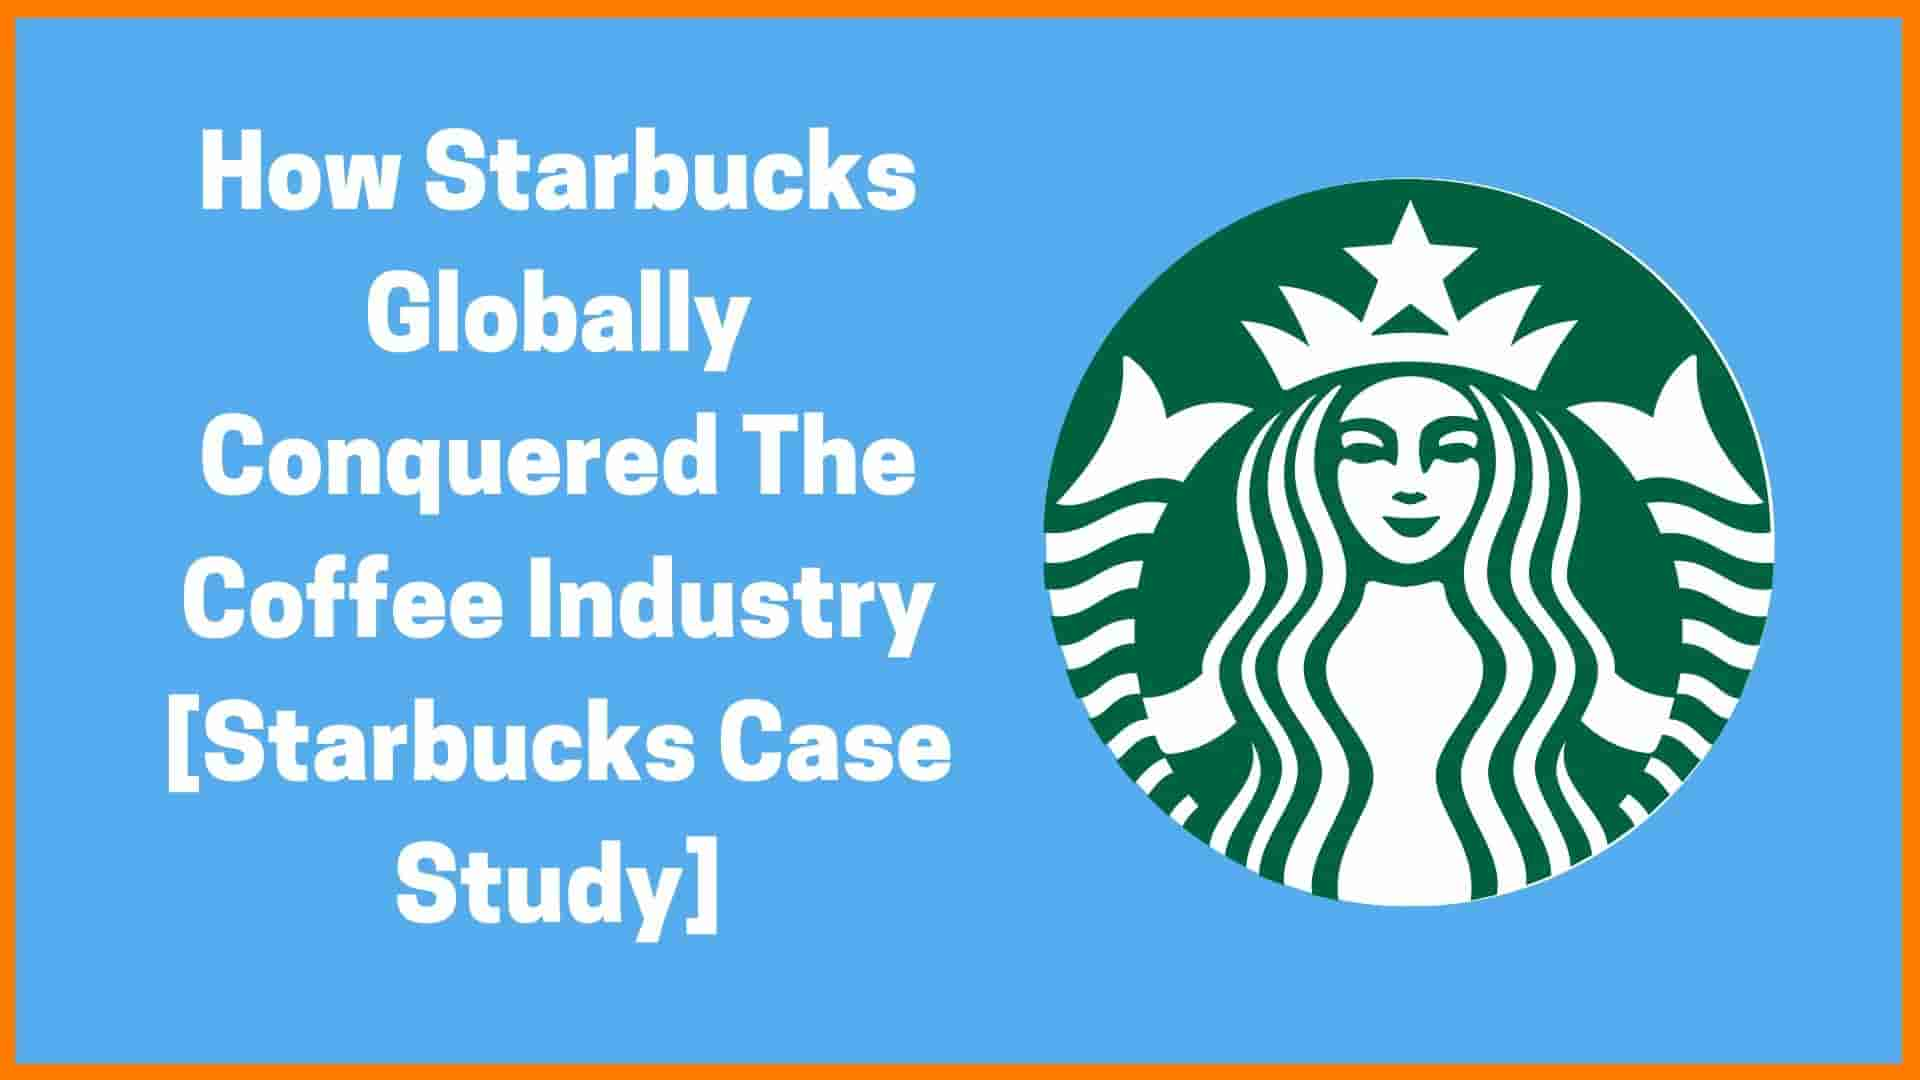 How Starbucks Conquered The Coffee Industry [Starbucks Case Study]